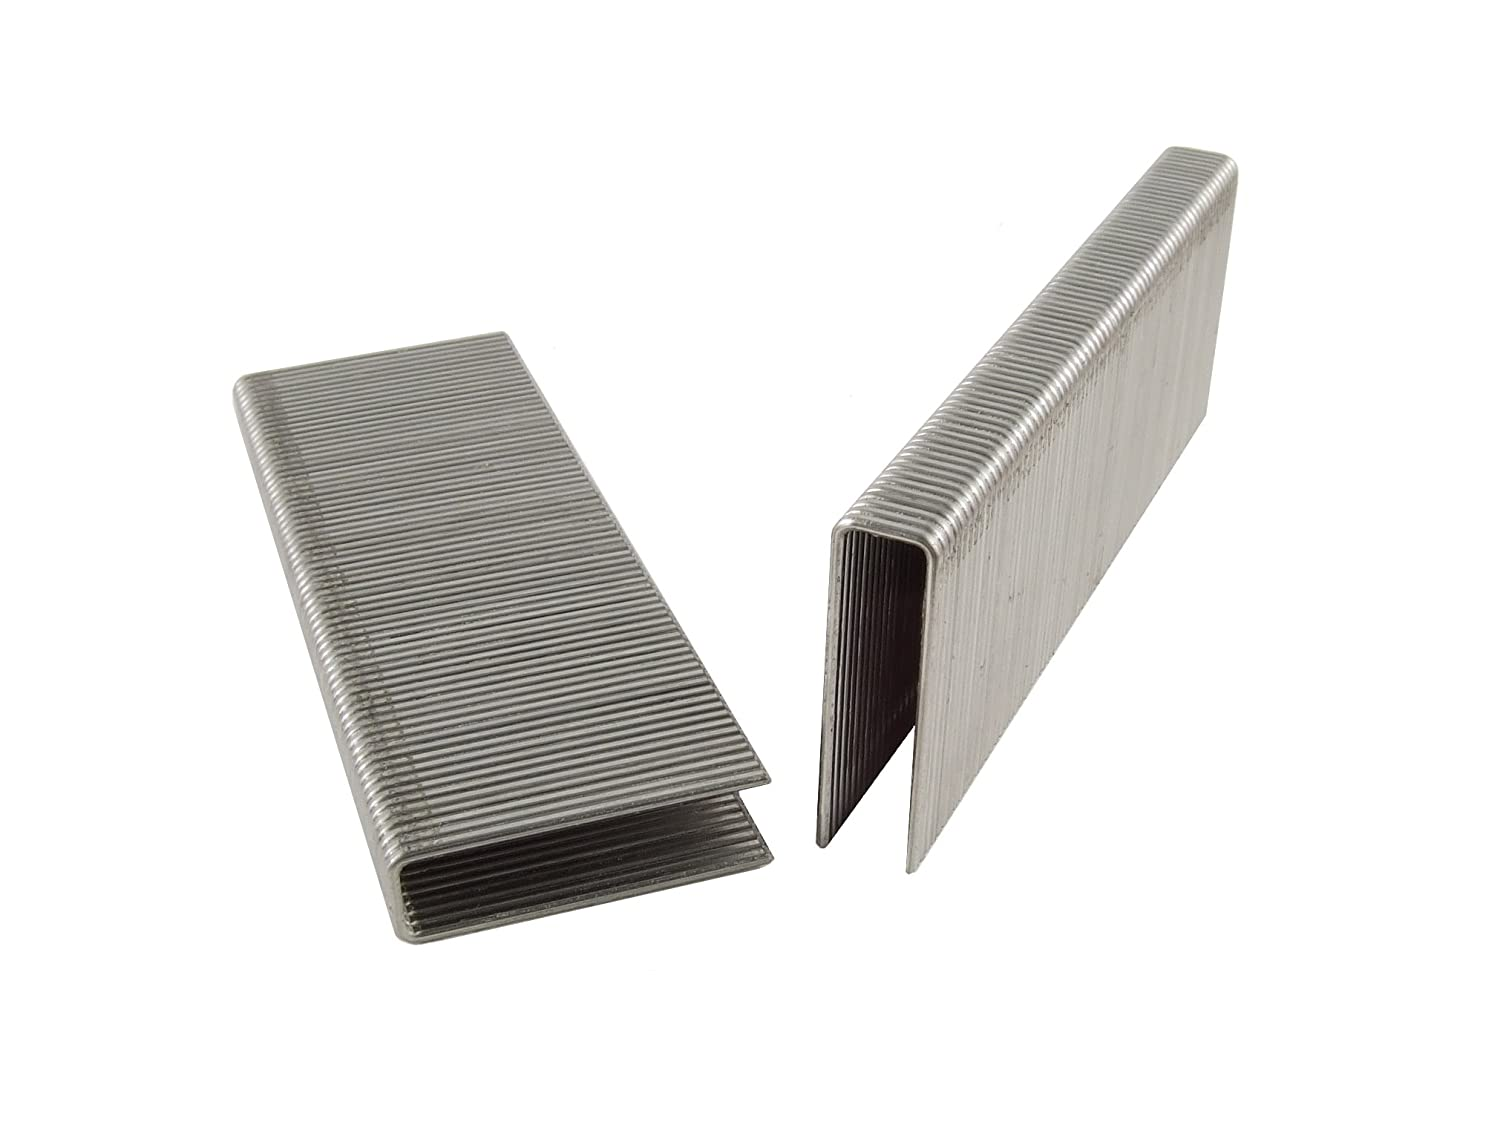 B&C Eagle SDM2SS-2M 2-Inch Length x 7/16-Inch Medium Crown x 16 Gauge S304 Stainless Steel Construction Staples (2, 000 per box) American Fastening Systems